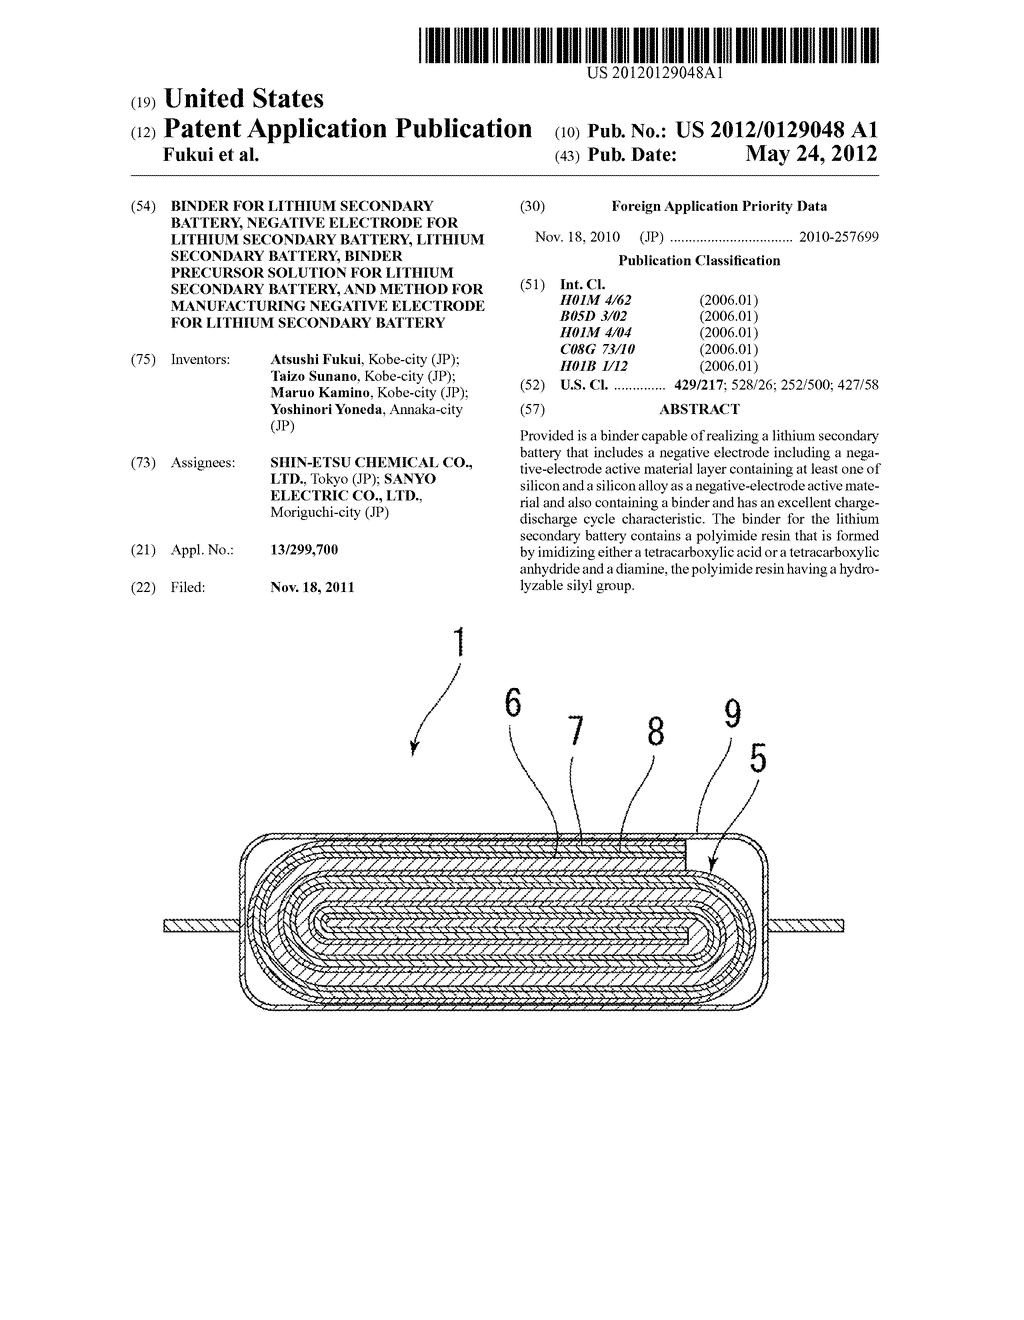 BINDER FOR LITHIUM SECONDARY BATTERY, NEGATIVE ELECTRODE FOR LITHIUM     SECONDARY BATTERY, LITHIUM SECONDARY BATTERY, BINDER PRECURSOR SOLUTION     FOR LITHIUM SECONDARY BATTERY, AND METHOD FOR MANUFACTURING NEGATIVE     ELECTRODE FOR LITHIUM SECONDARY BATTERY - diagram, schematic, and image 01